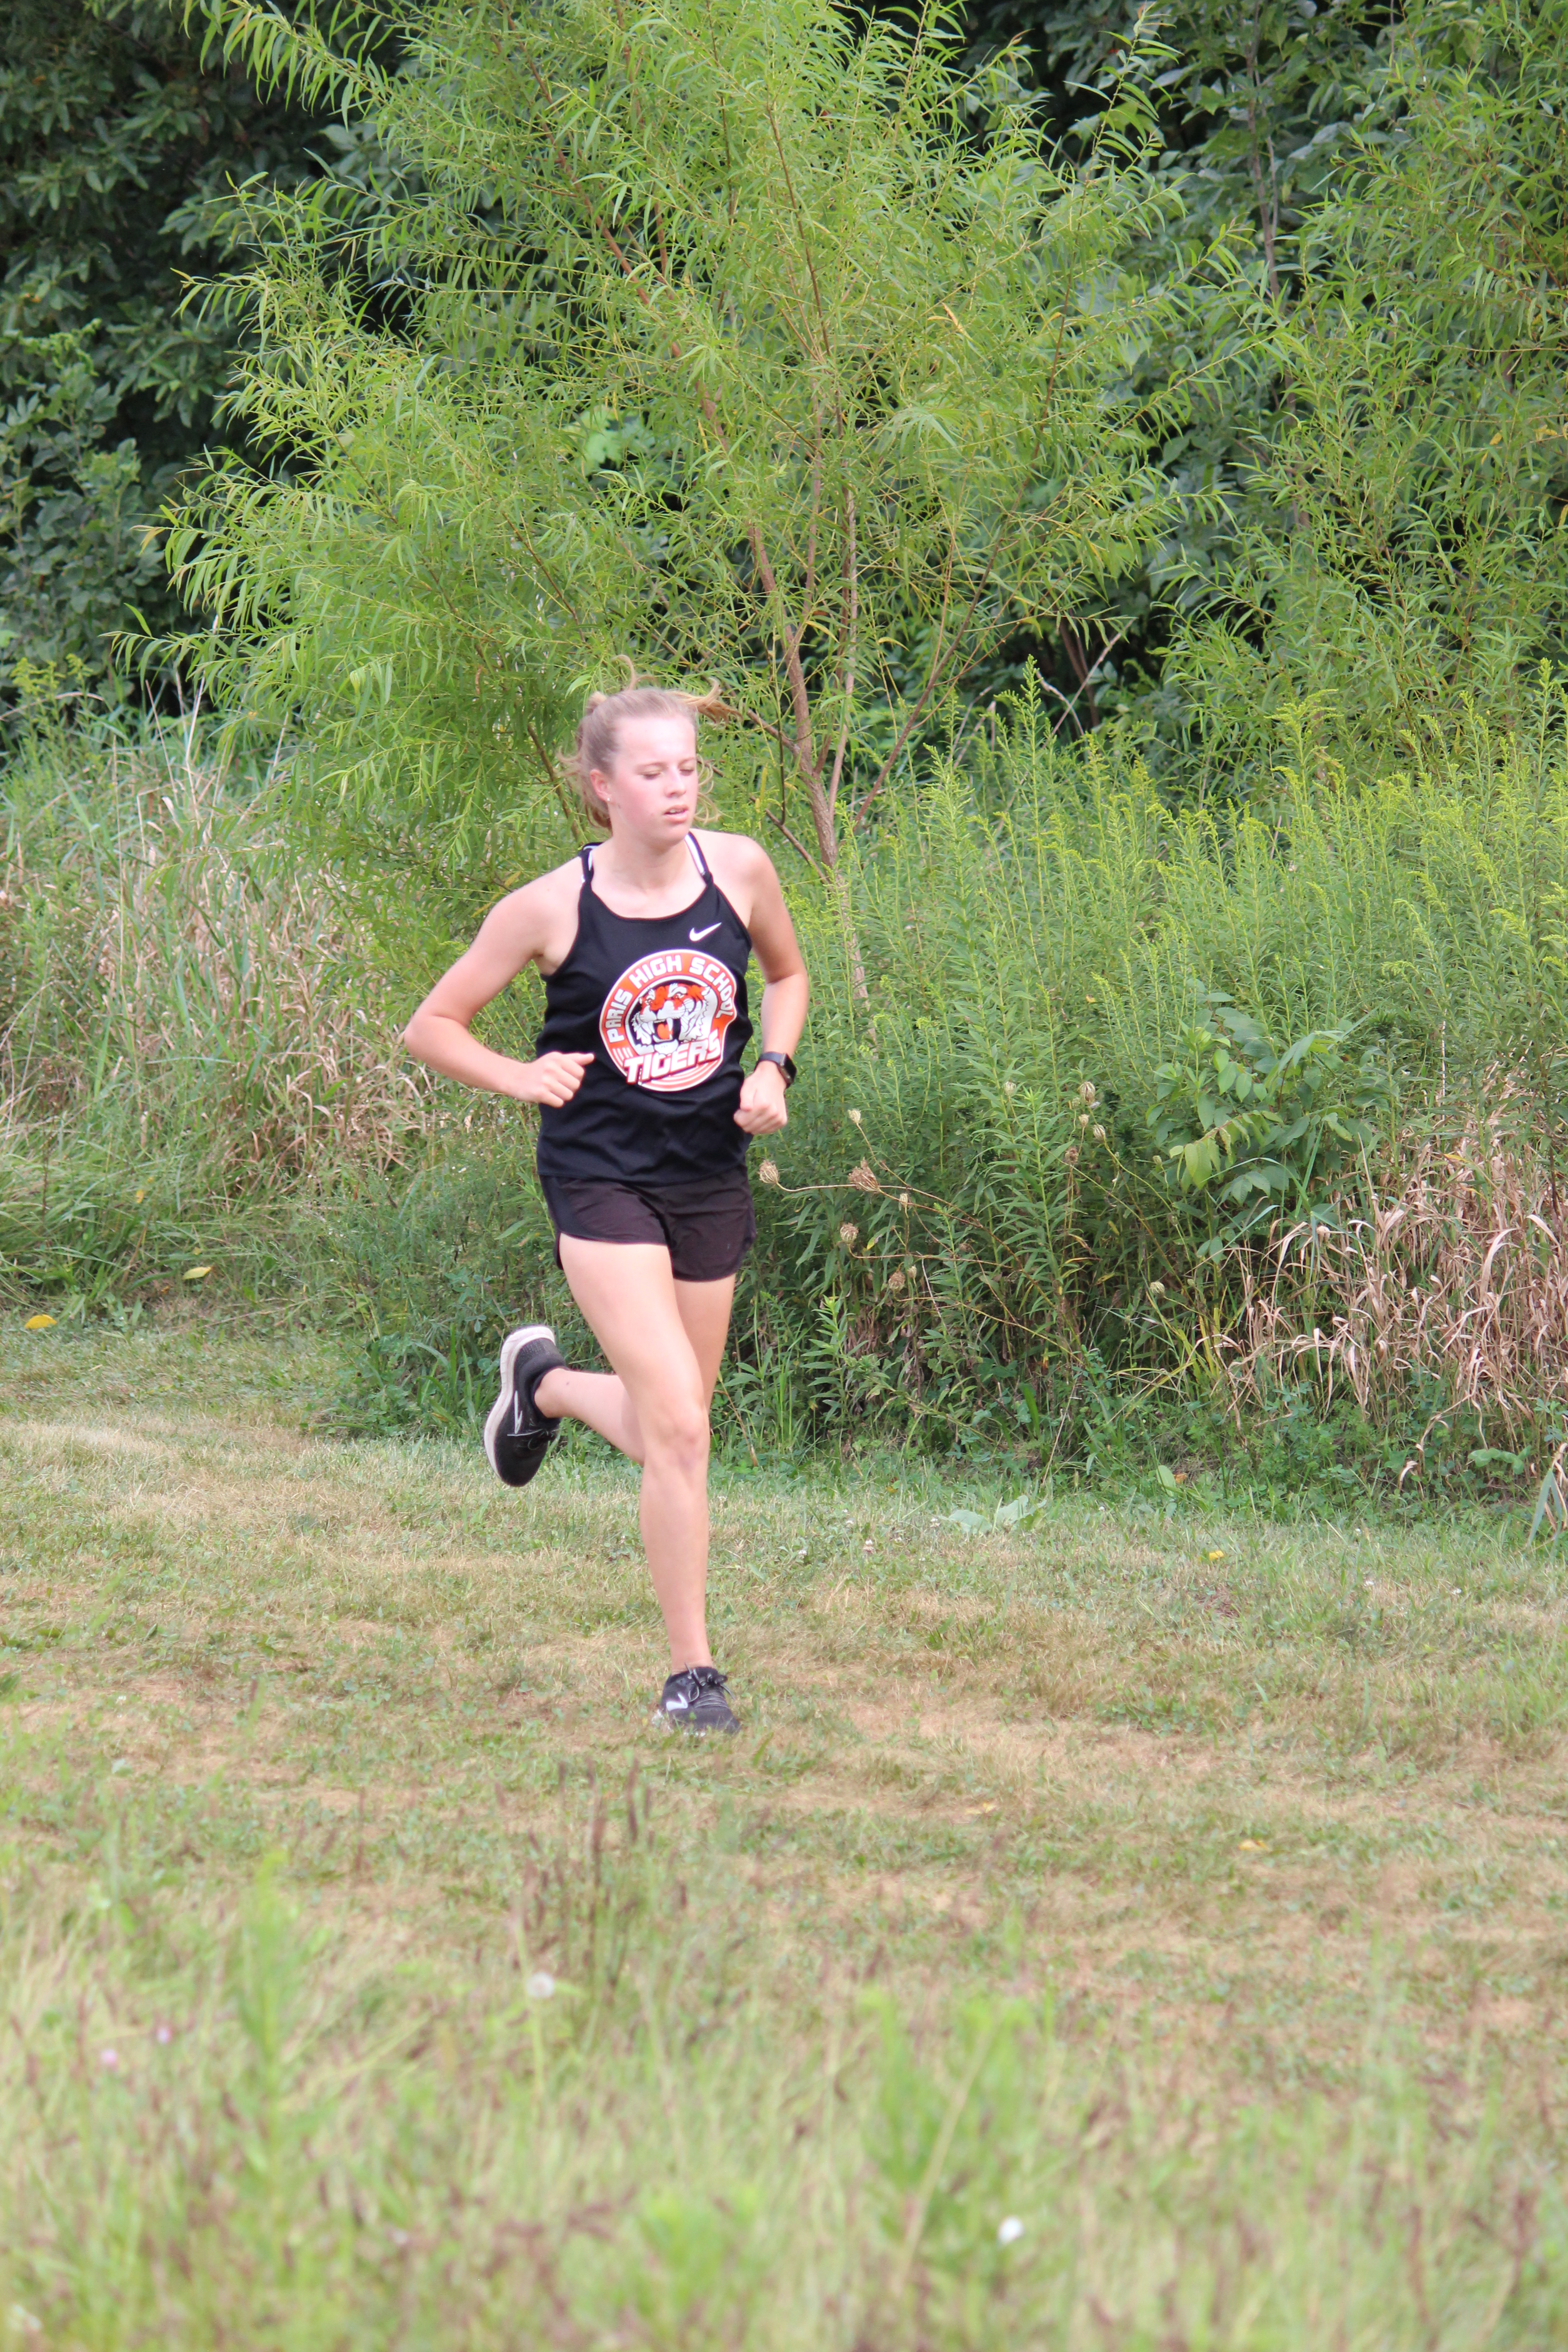 1602690175-xc_kaitlyn_coombes_action_photo_2020